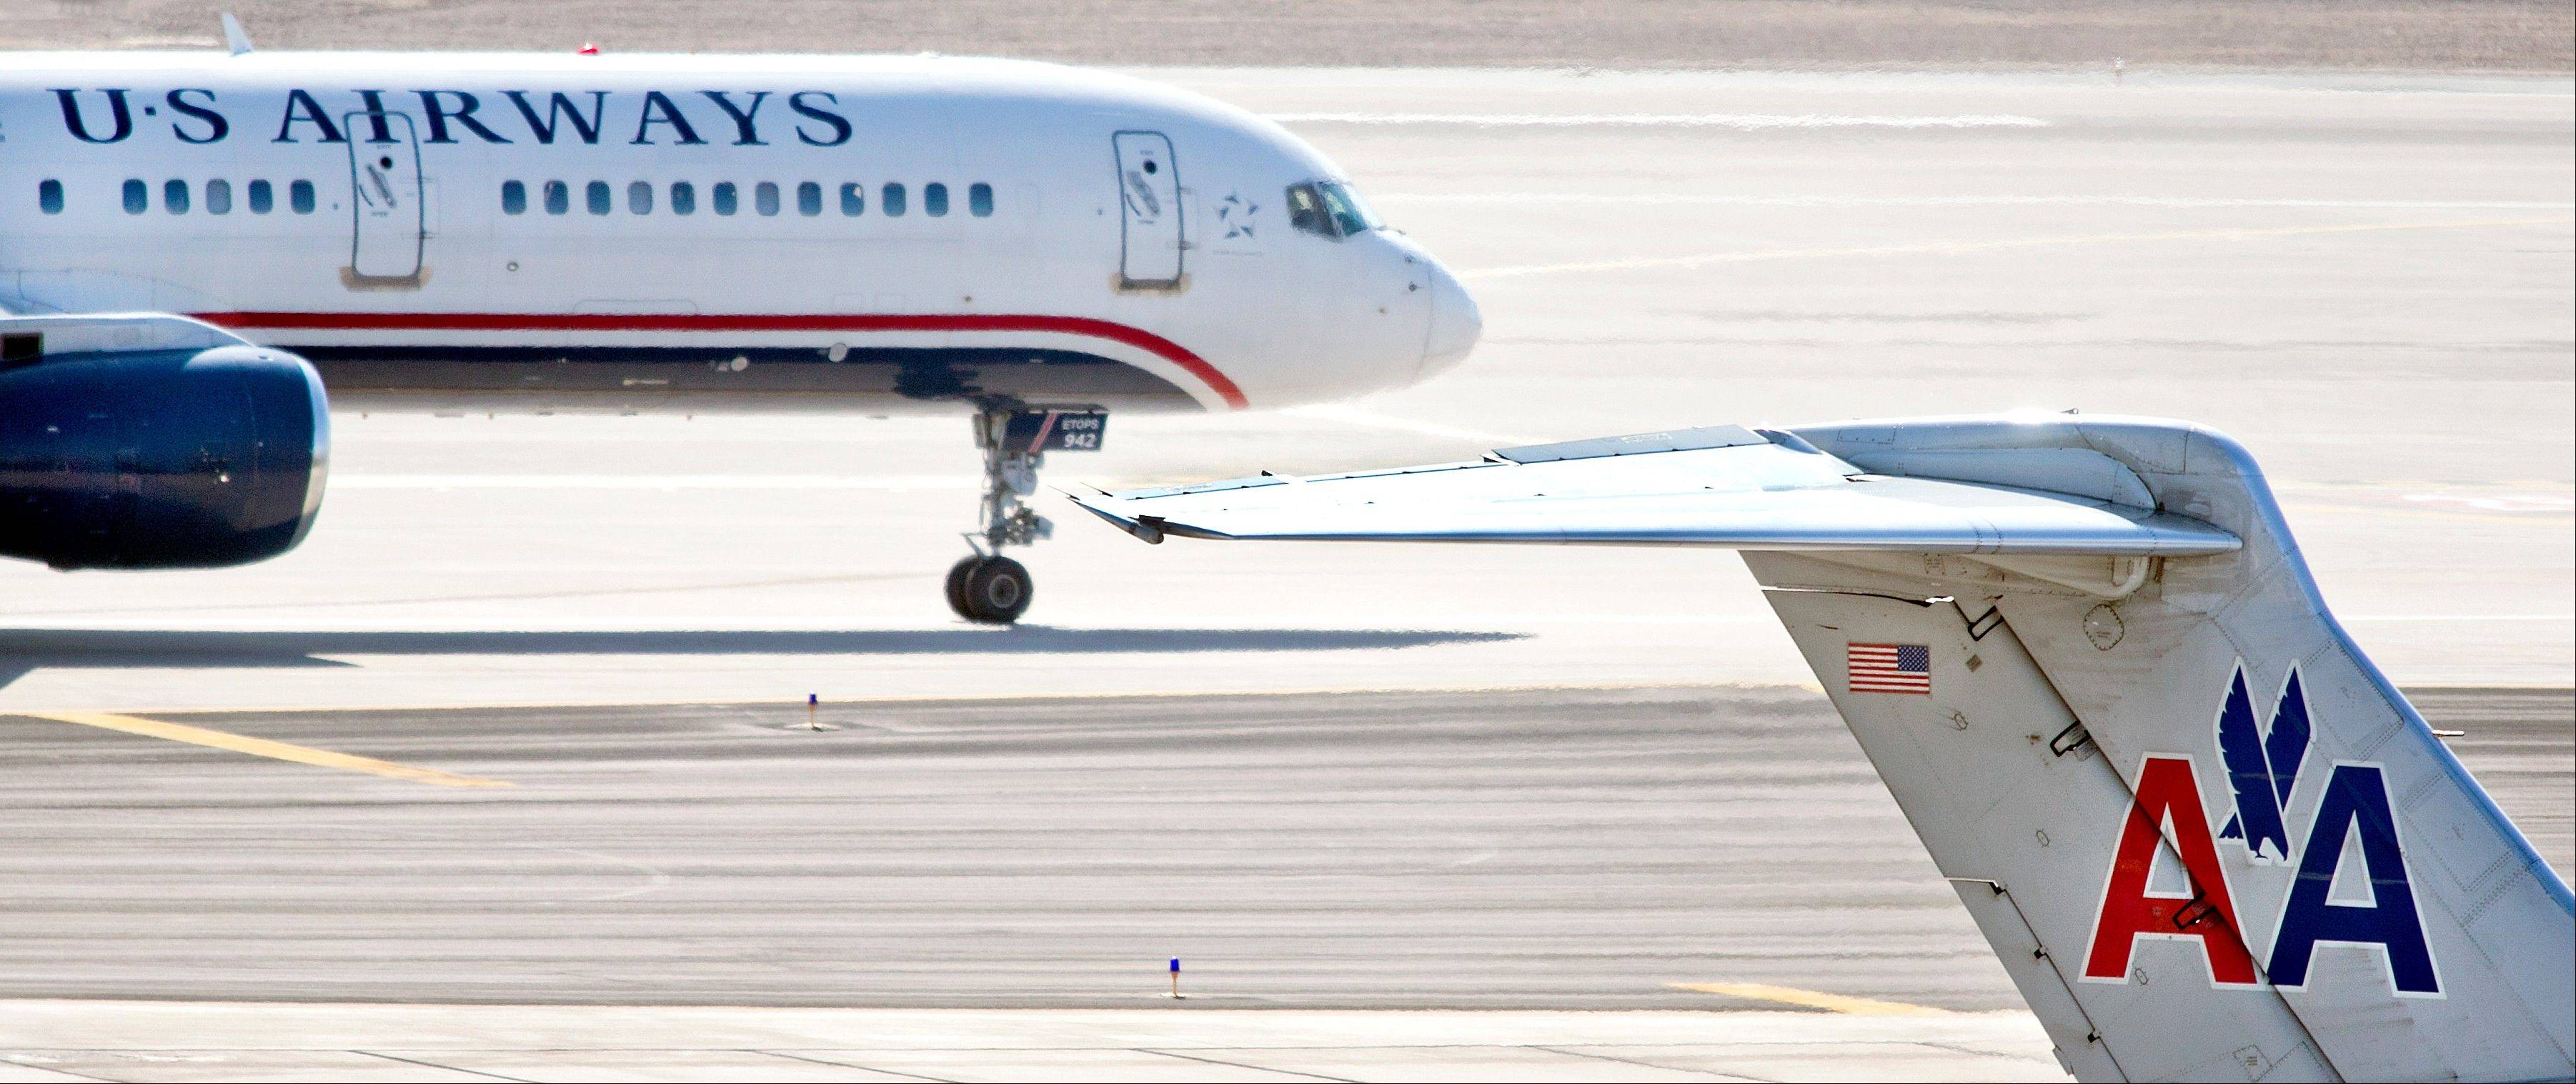 A merger of American Airlines and US Airways has long been rumored. Negotiations between the two airlines may finally conclude this week.